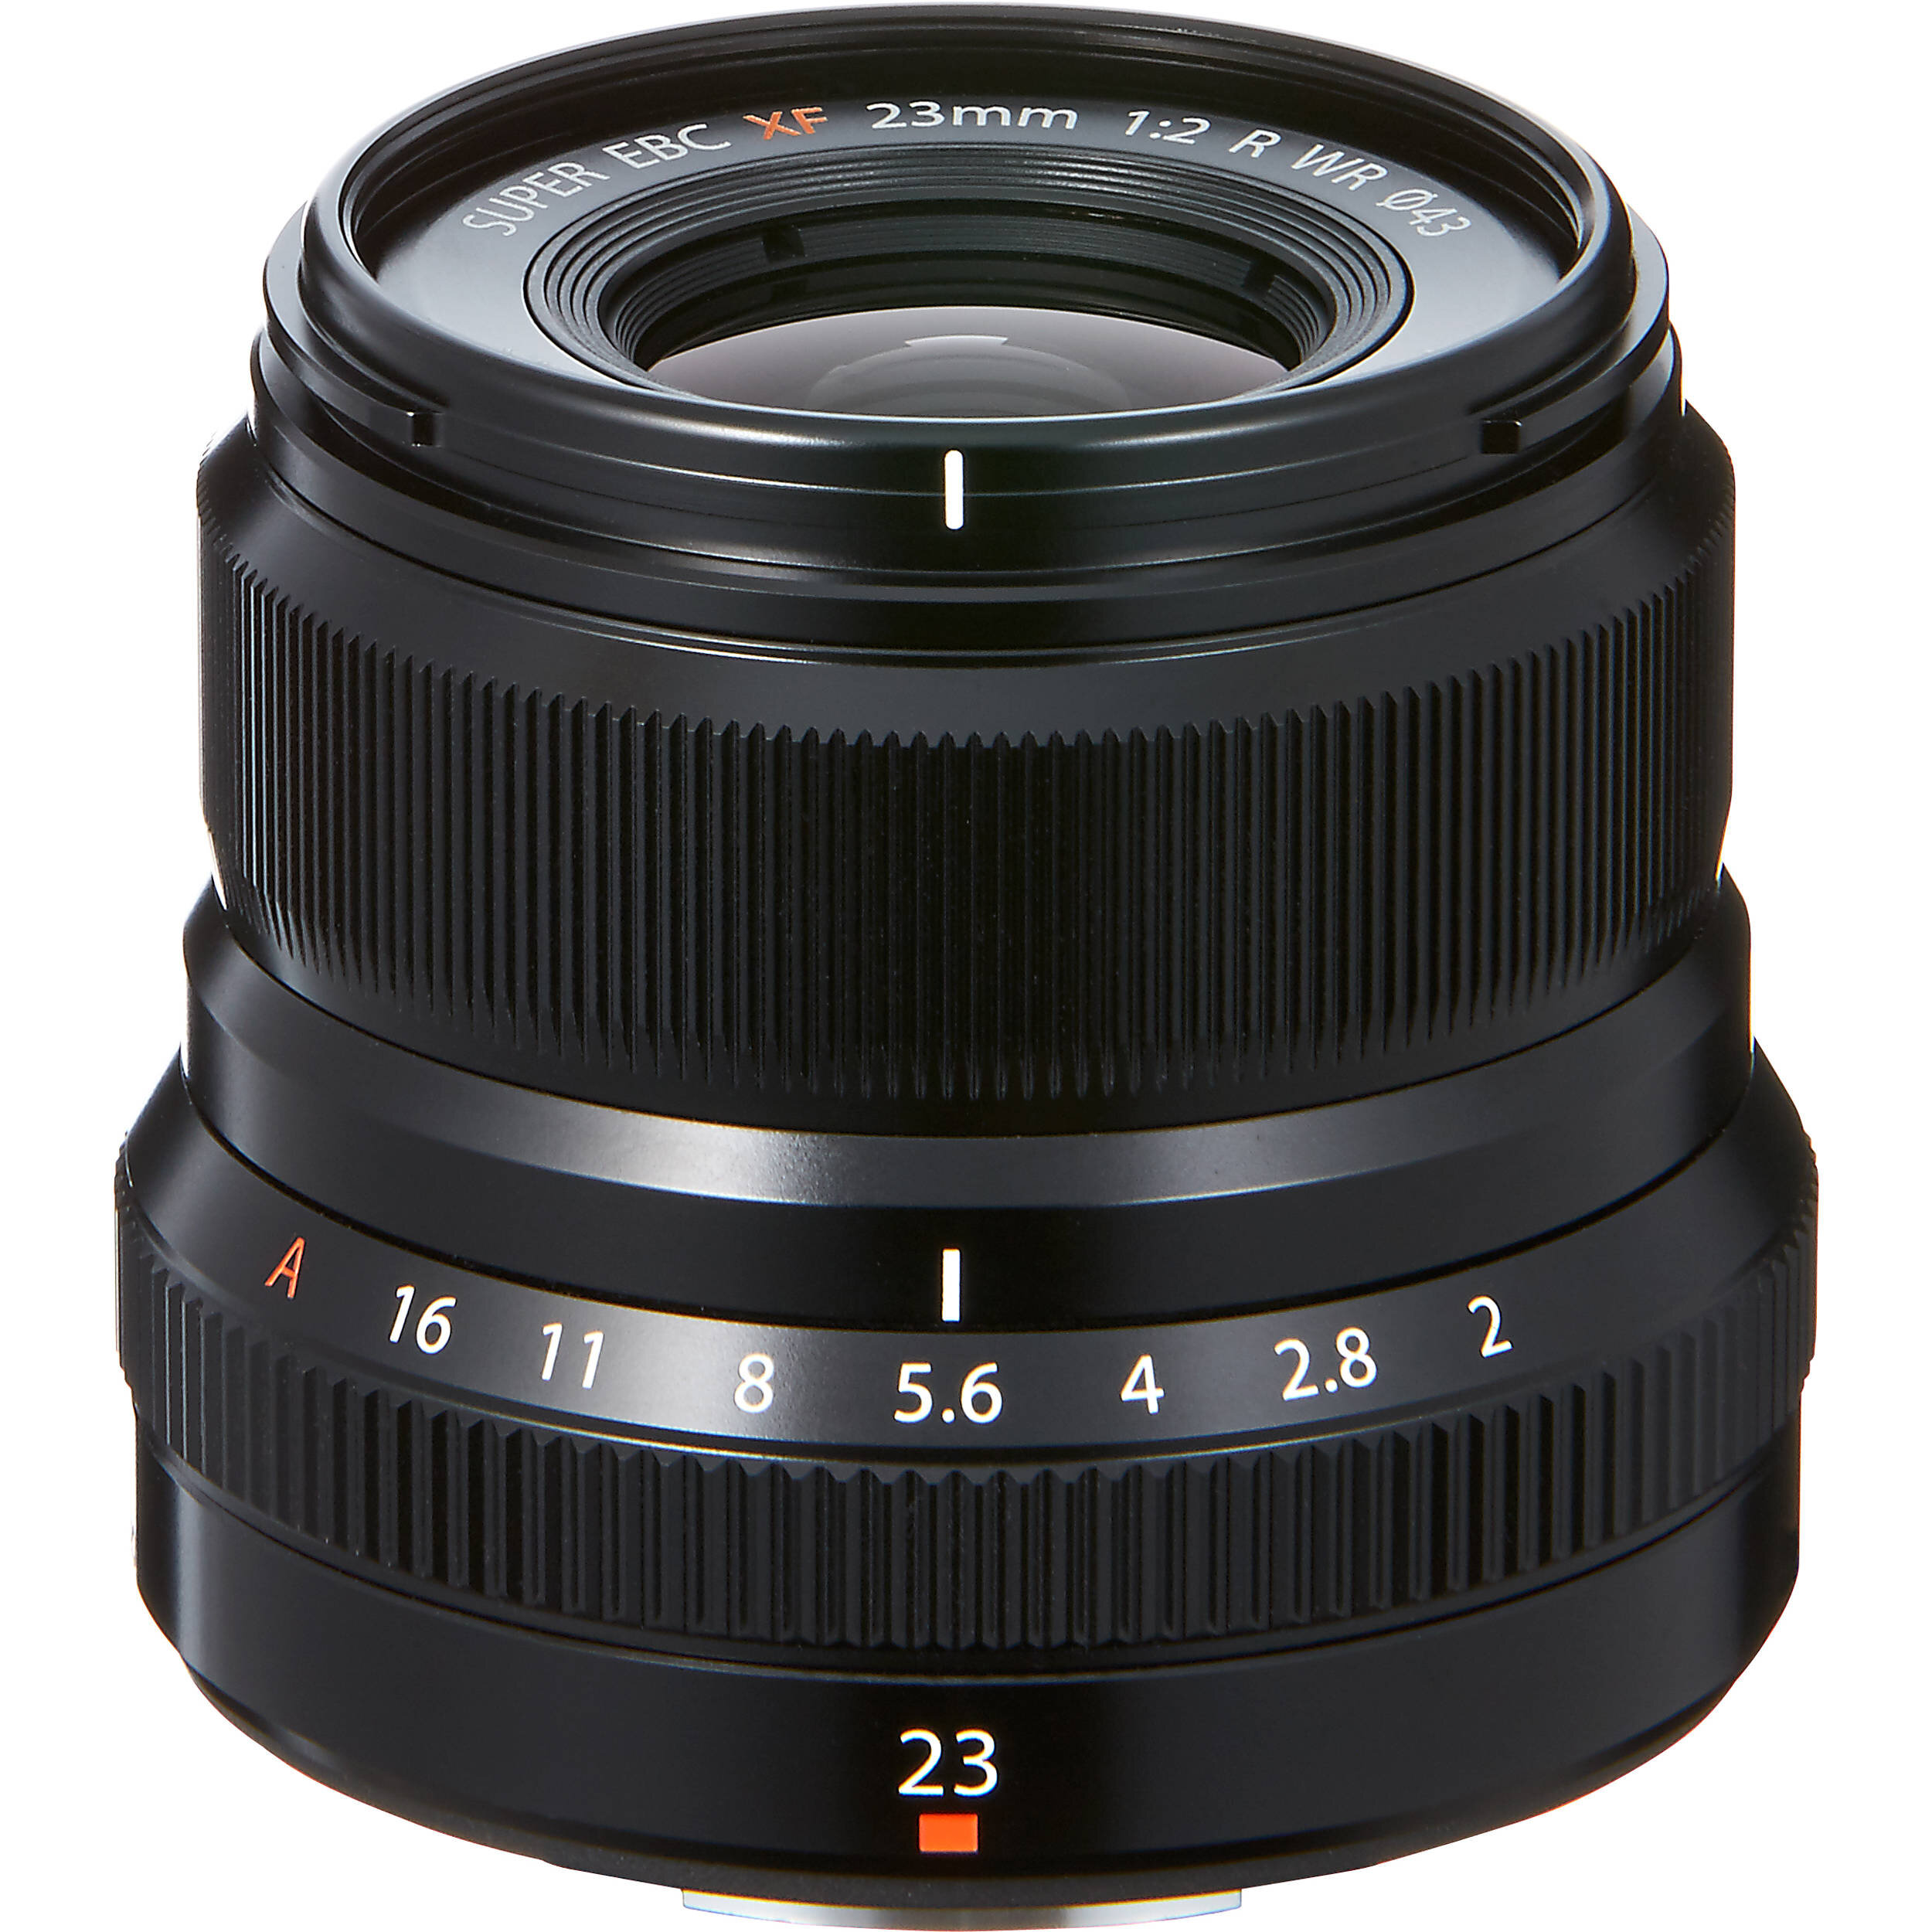 Fujinon 23mm f2 - Small but oh so powerful.